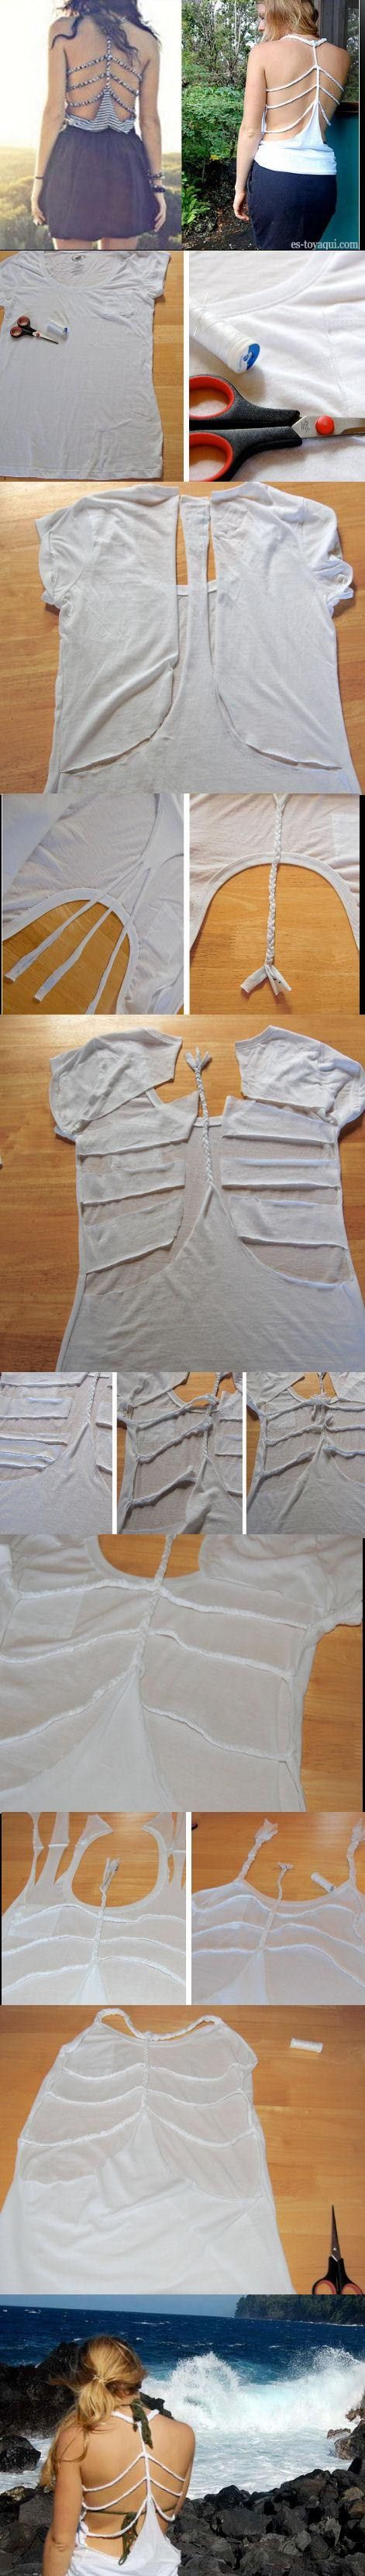 DIY Shirt Pictures, Photos, and Images for Facebook, Tumblr, Pinterest, and Twitter